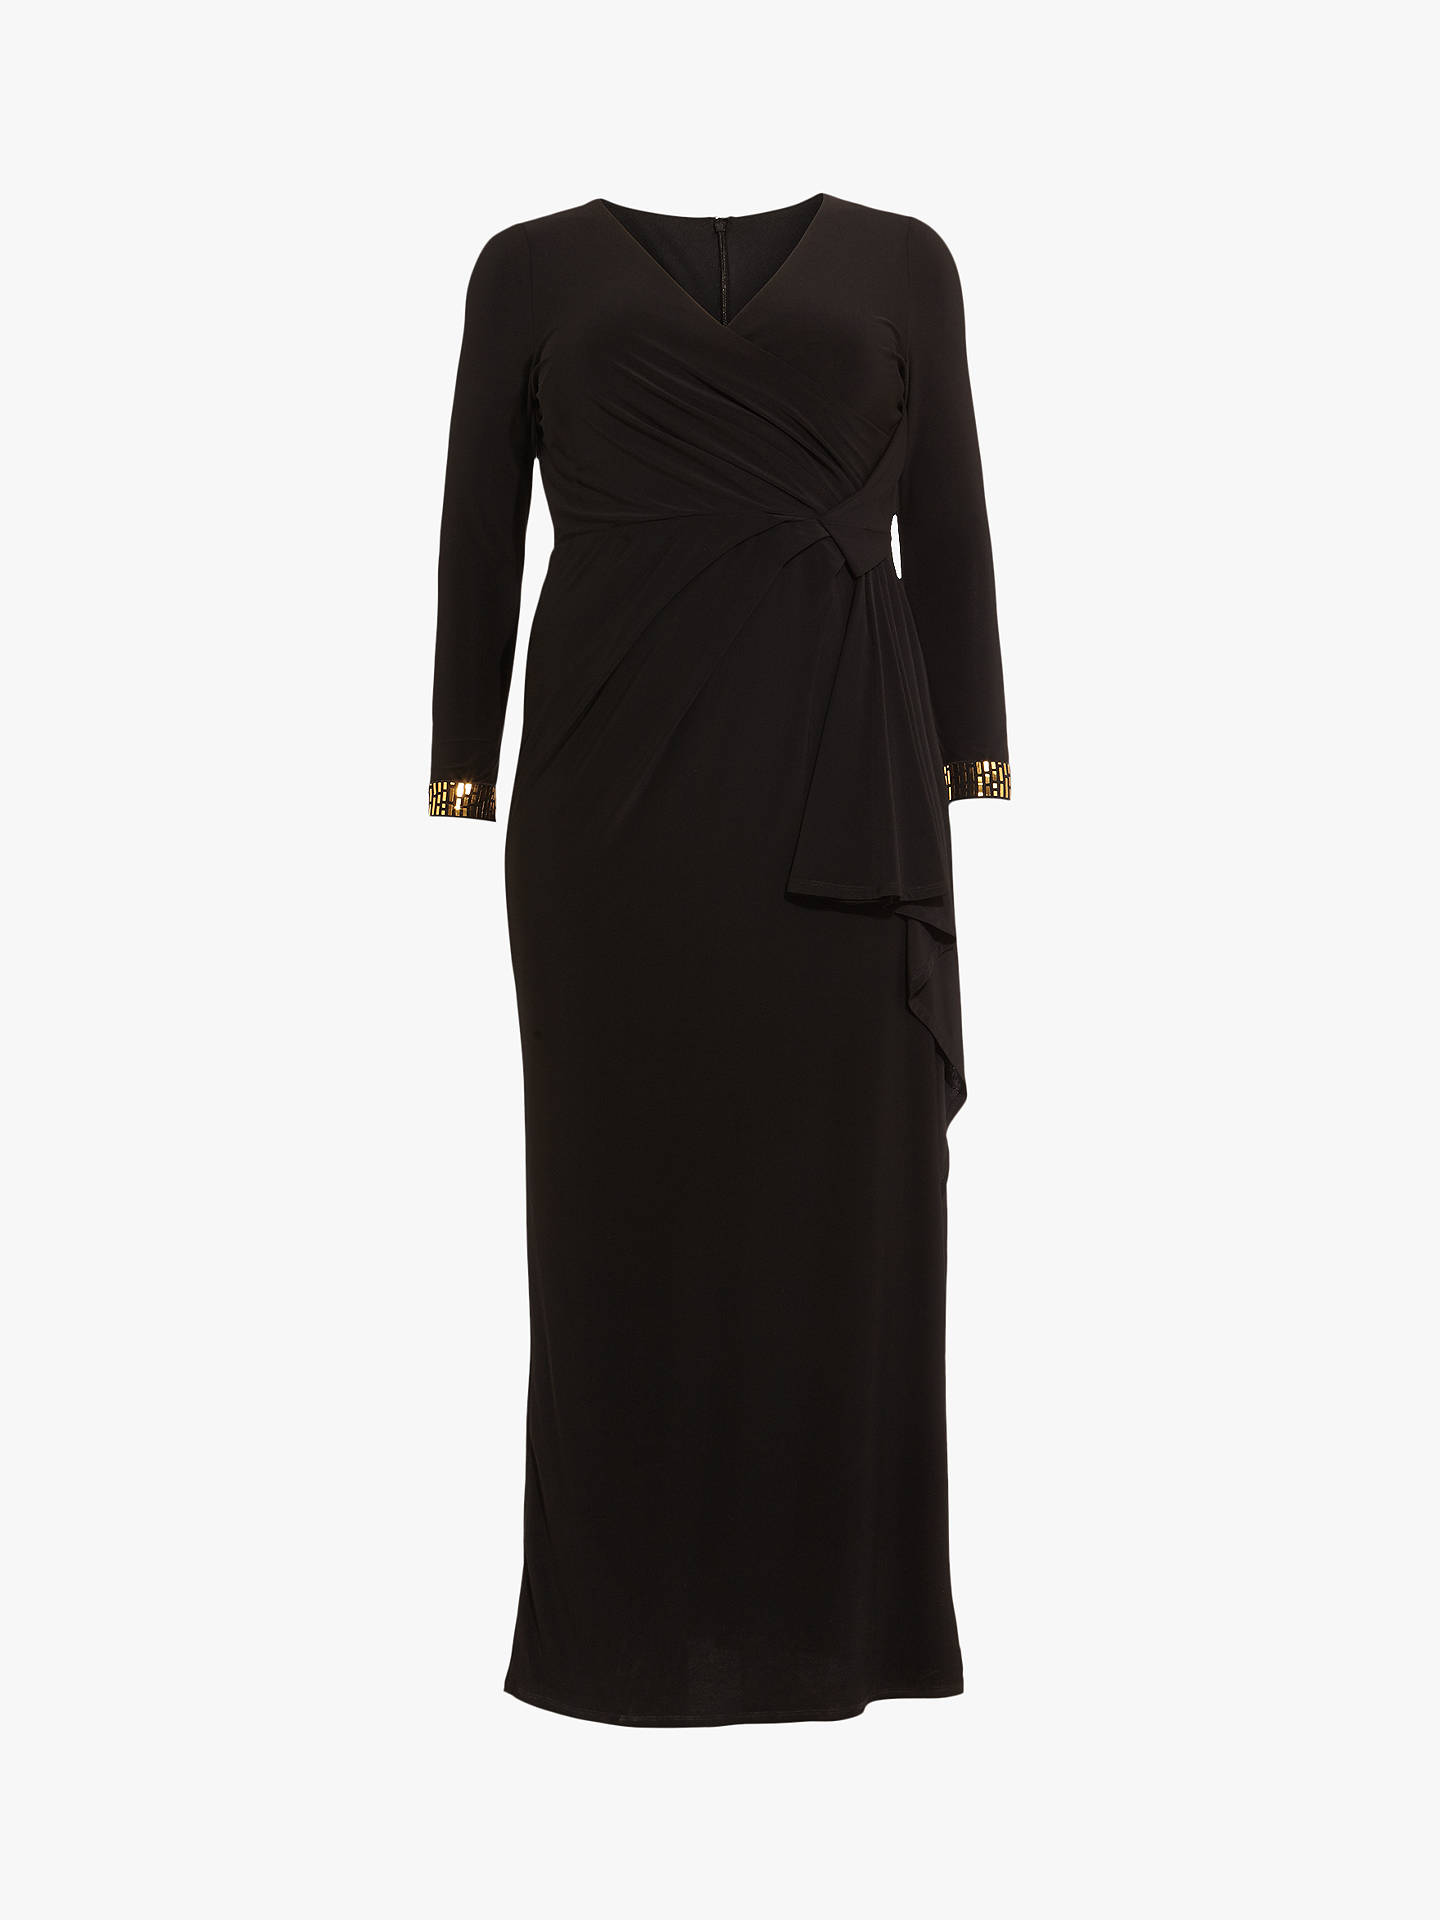 Buy Studio 8 Julianna Maxi Dress, Black, 14 Online at johnlewis.com